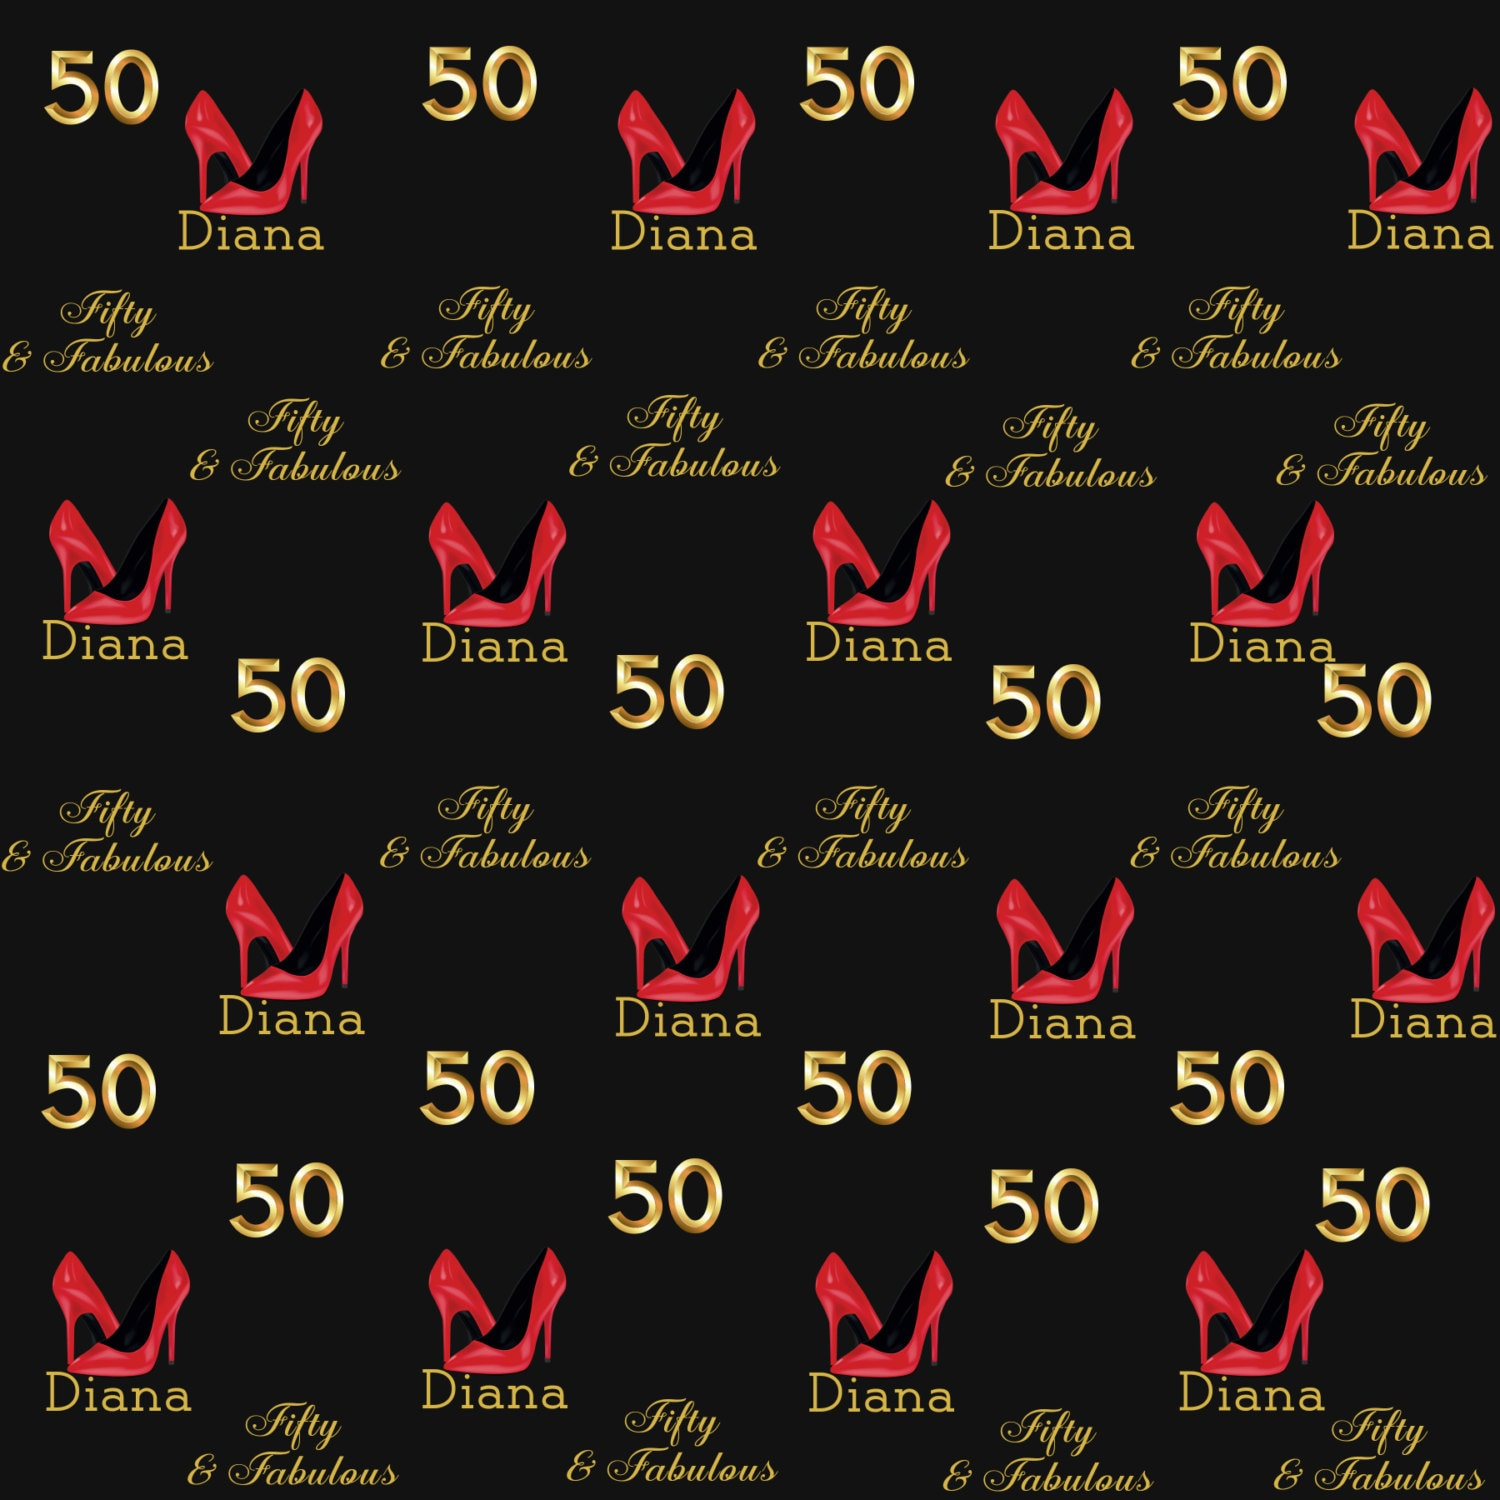 50 And Fabulous Backdrop: Photo Backdrop Stepping Into 50- Step And Repeat